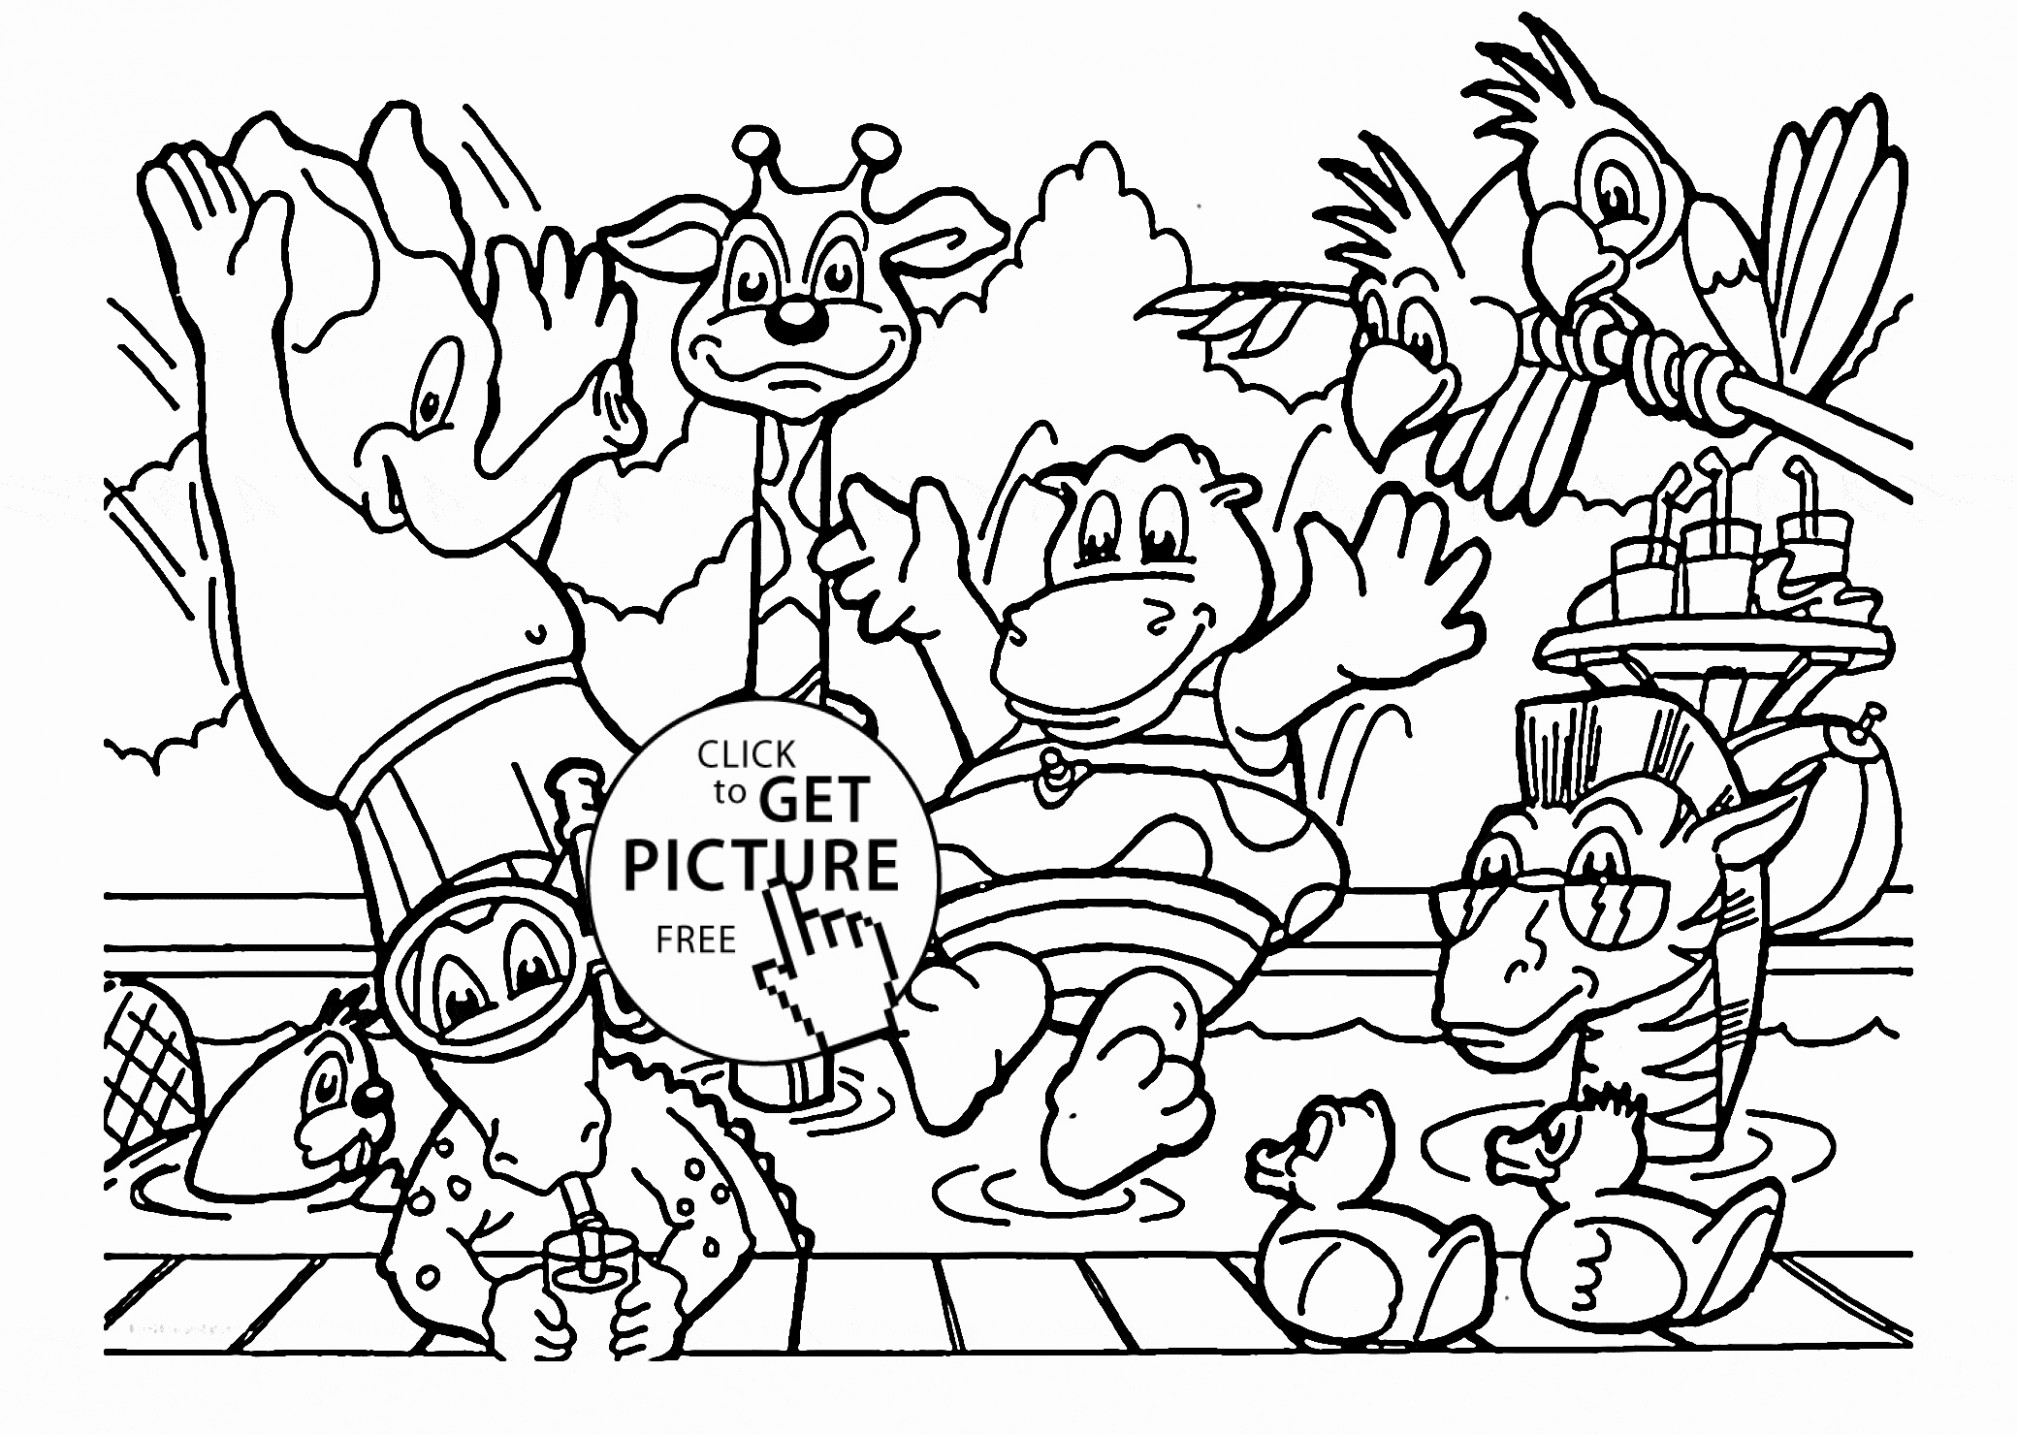 Zoo Coloring Pages Printable | Free Coloring Books